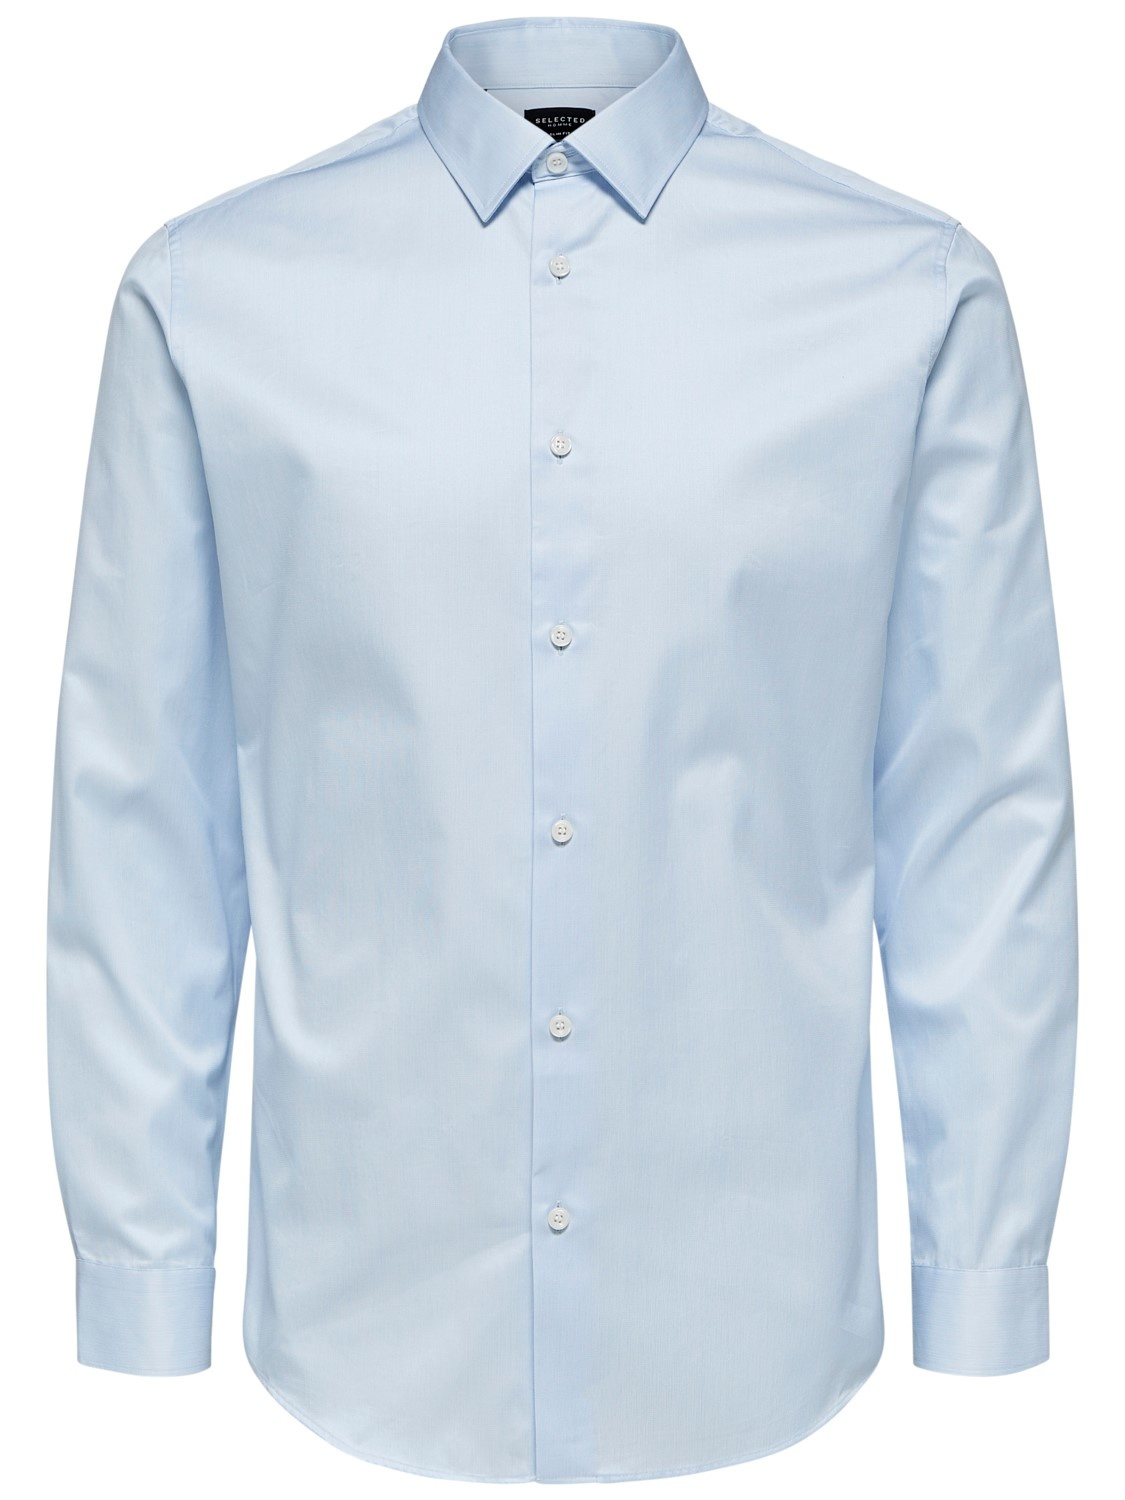 Selected SELECTED SLHSLIMPEN - PELLE shirt Noos